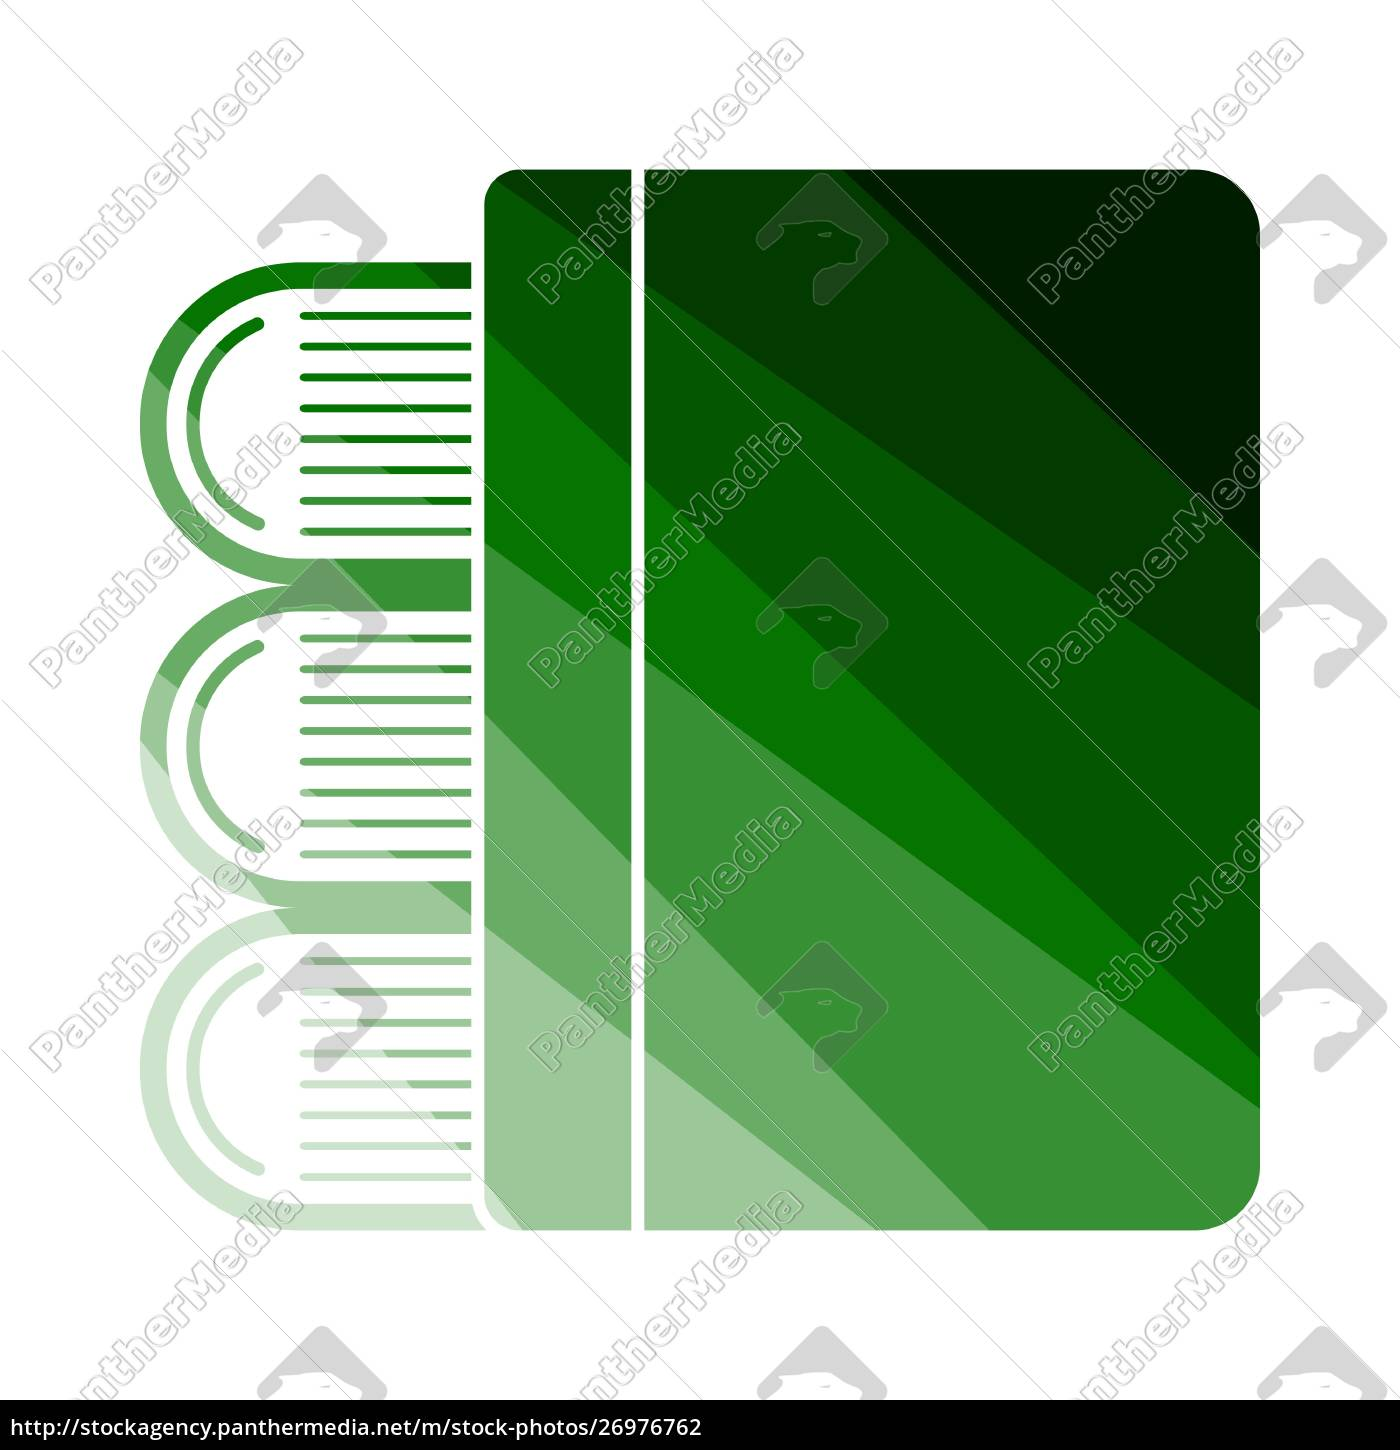 stack, of, books, icon - 26976762